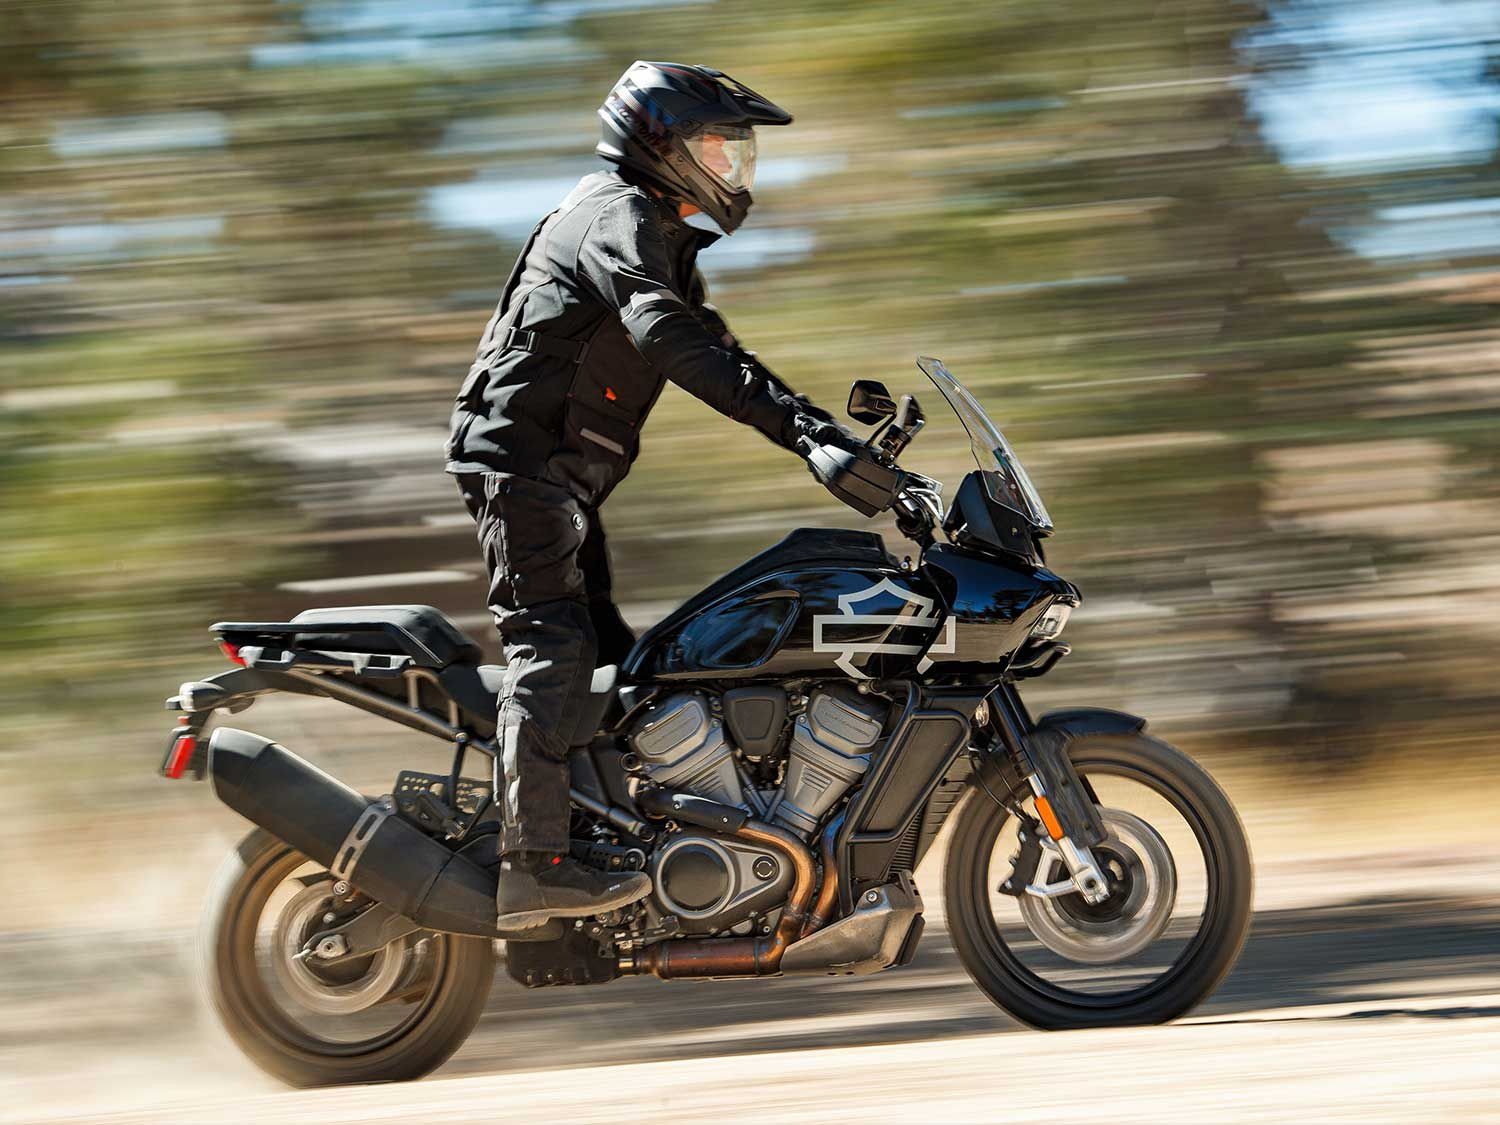 The Pan America is still set to launch next year, according to the latest statements from Harley.